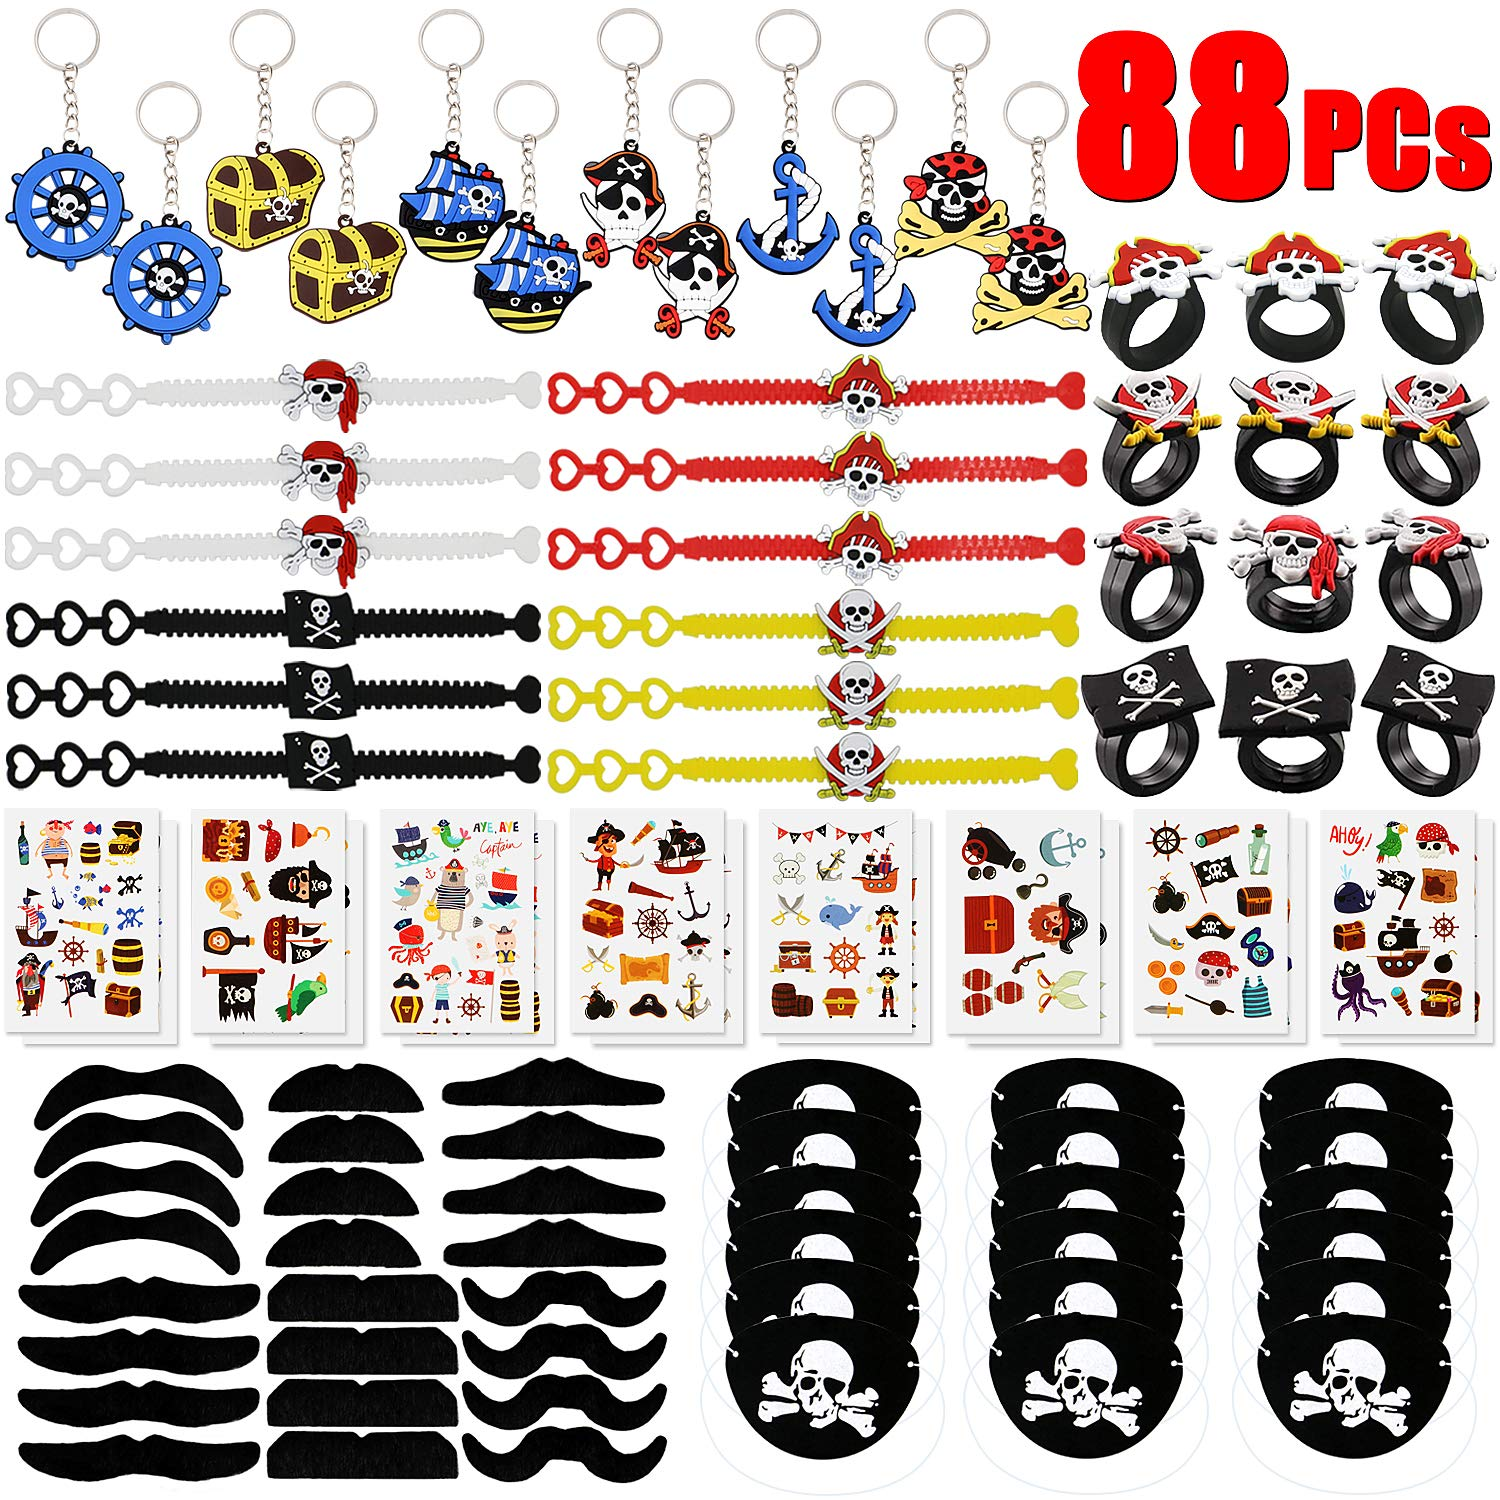 BabyCareV 88 PCs Pirate Party Favors Pirate Keychain Rings Bracelets Pirate Eye Patch Mustache Tattoos Stickers Pirate Party Favors Decoration